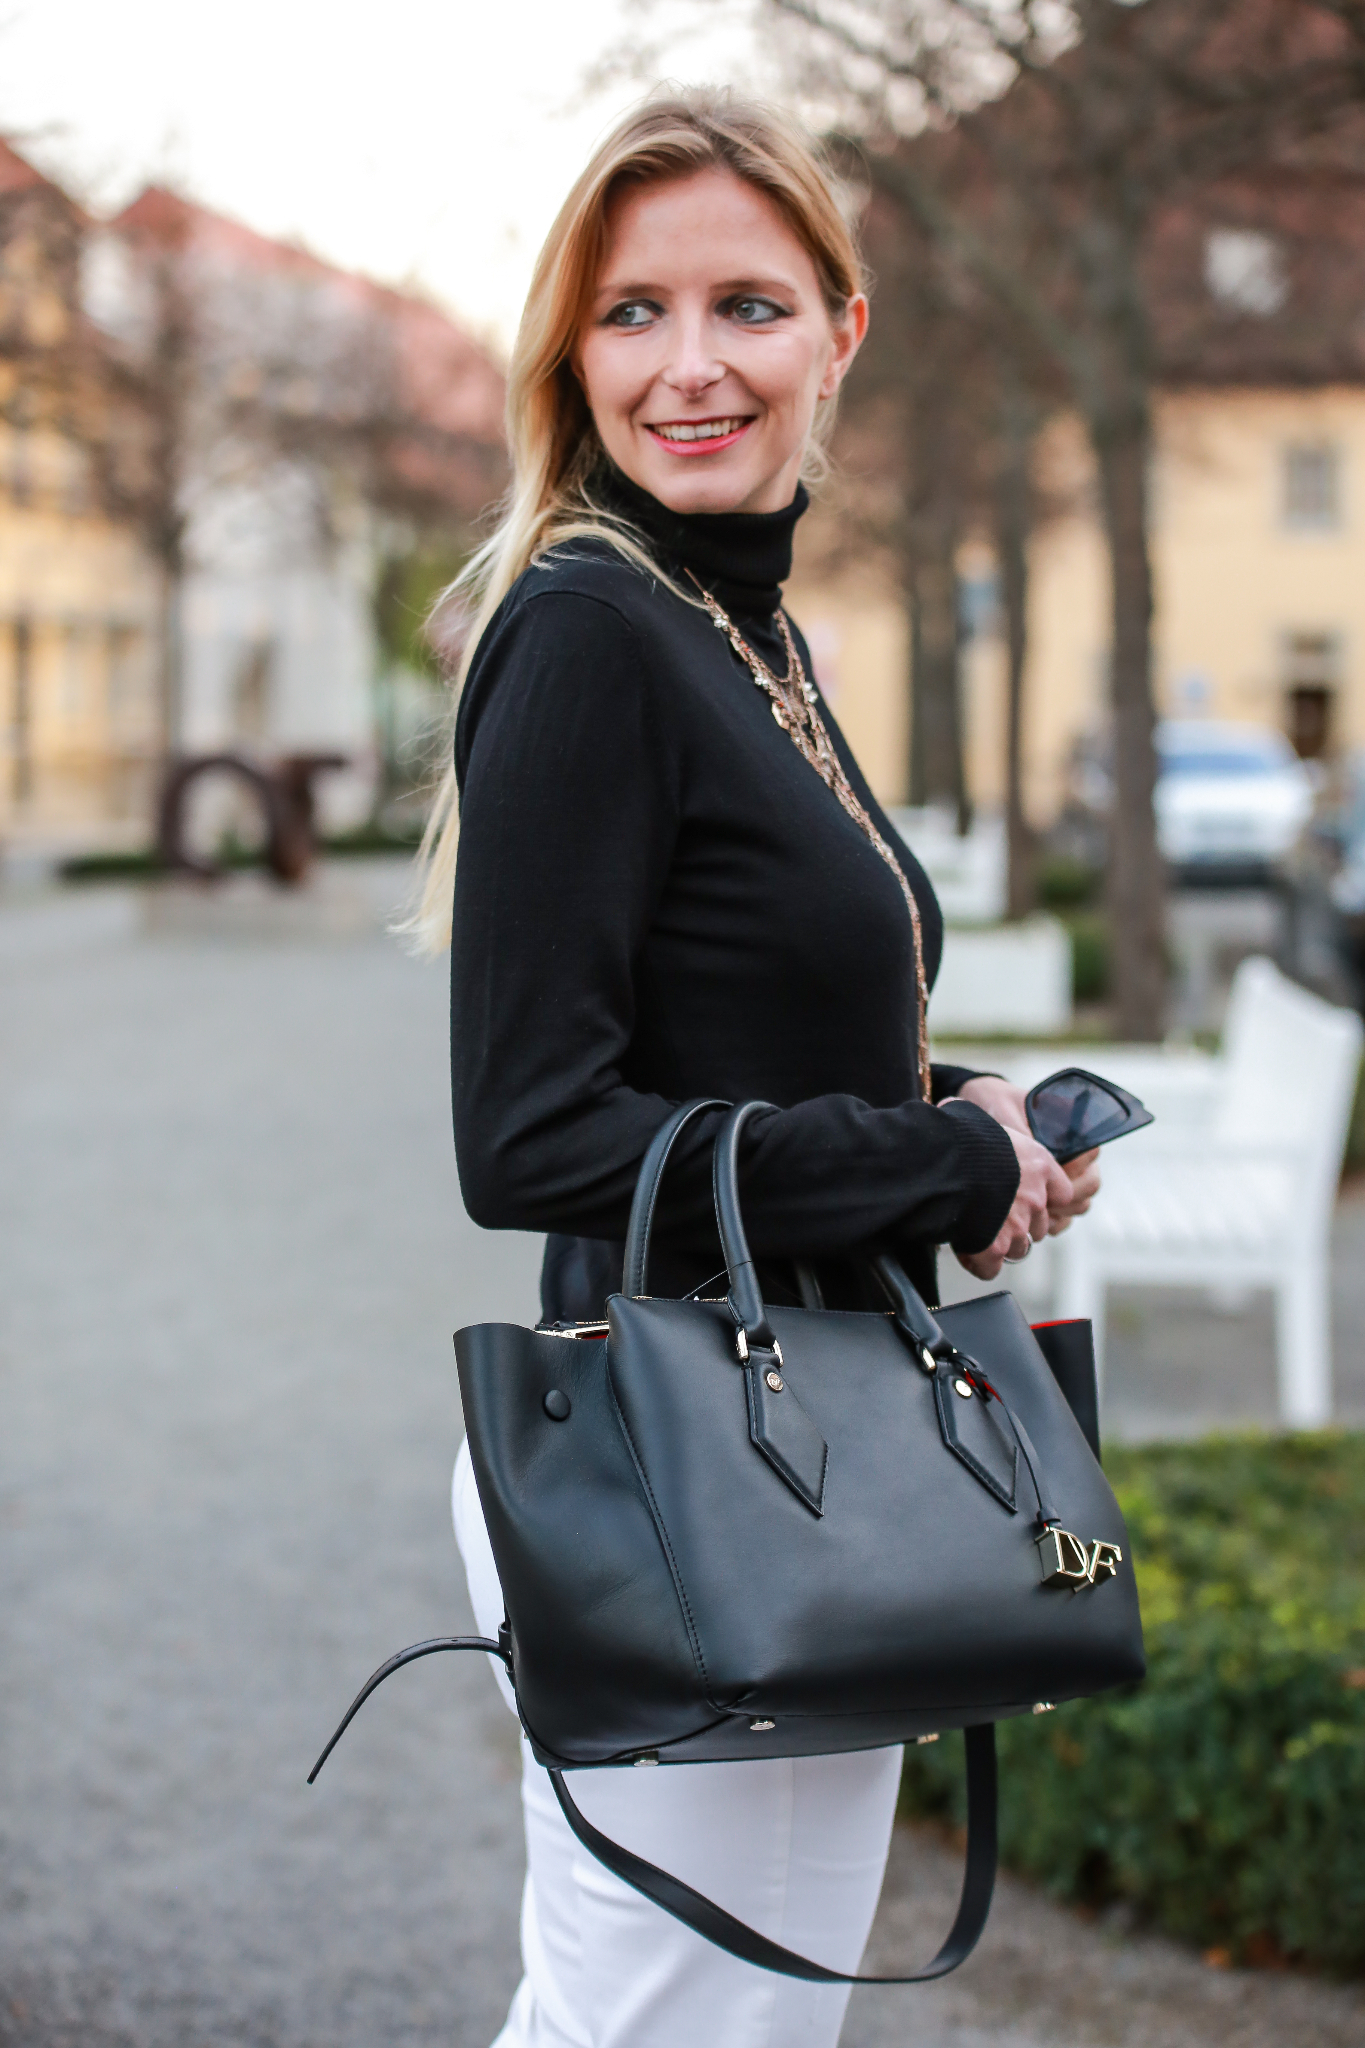 Fashion_Outfit_70`_x_DvF-61